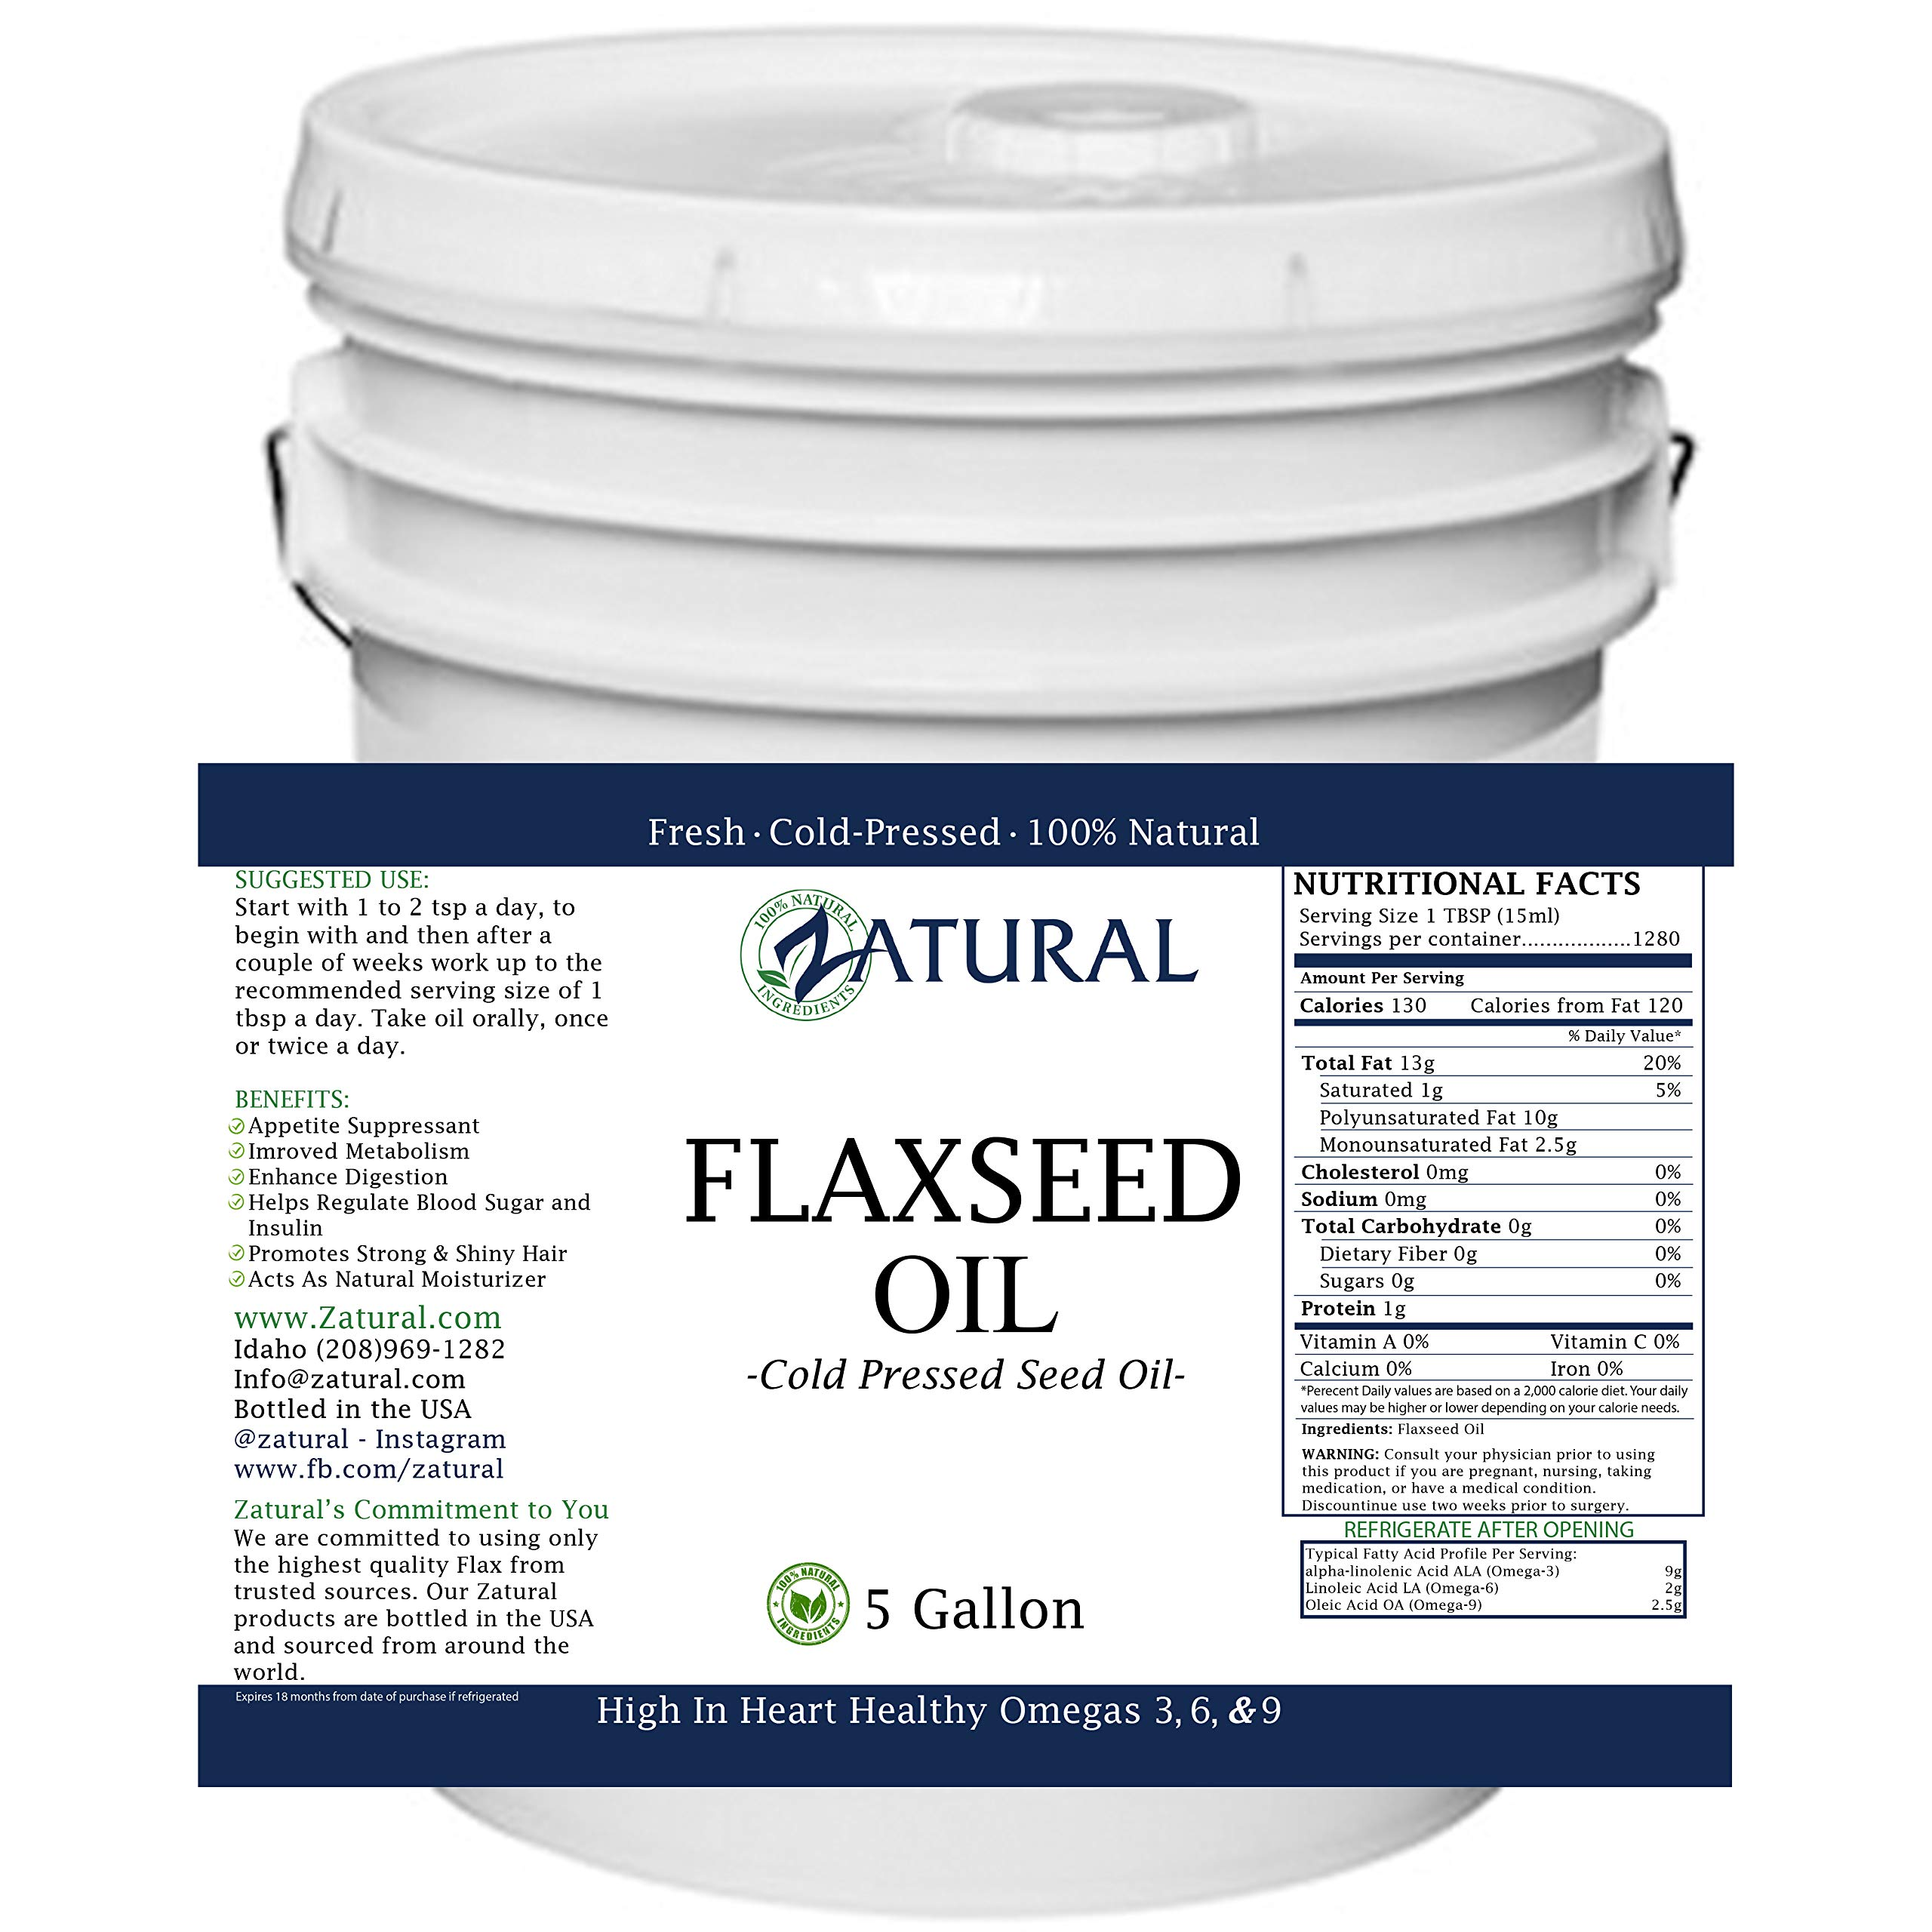 FlaxSeed Oil - 100% Pure Flax Seed Oil - 0 Additives - 0 Fillers - Cold Pressed (640 Ounce (5 Gallon)) by Zatural